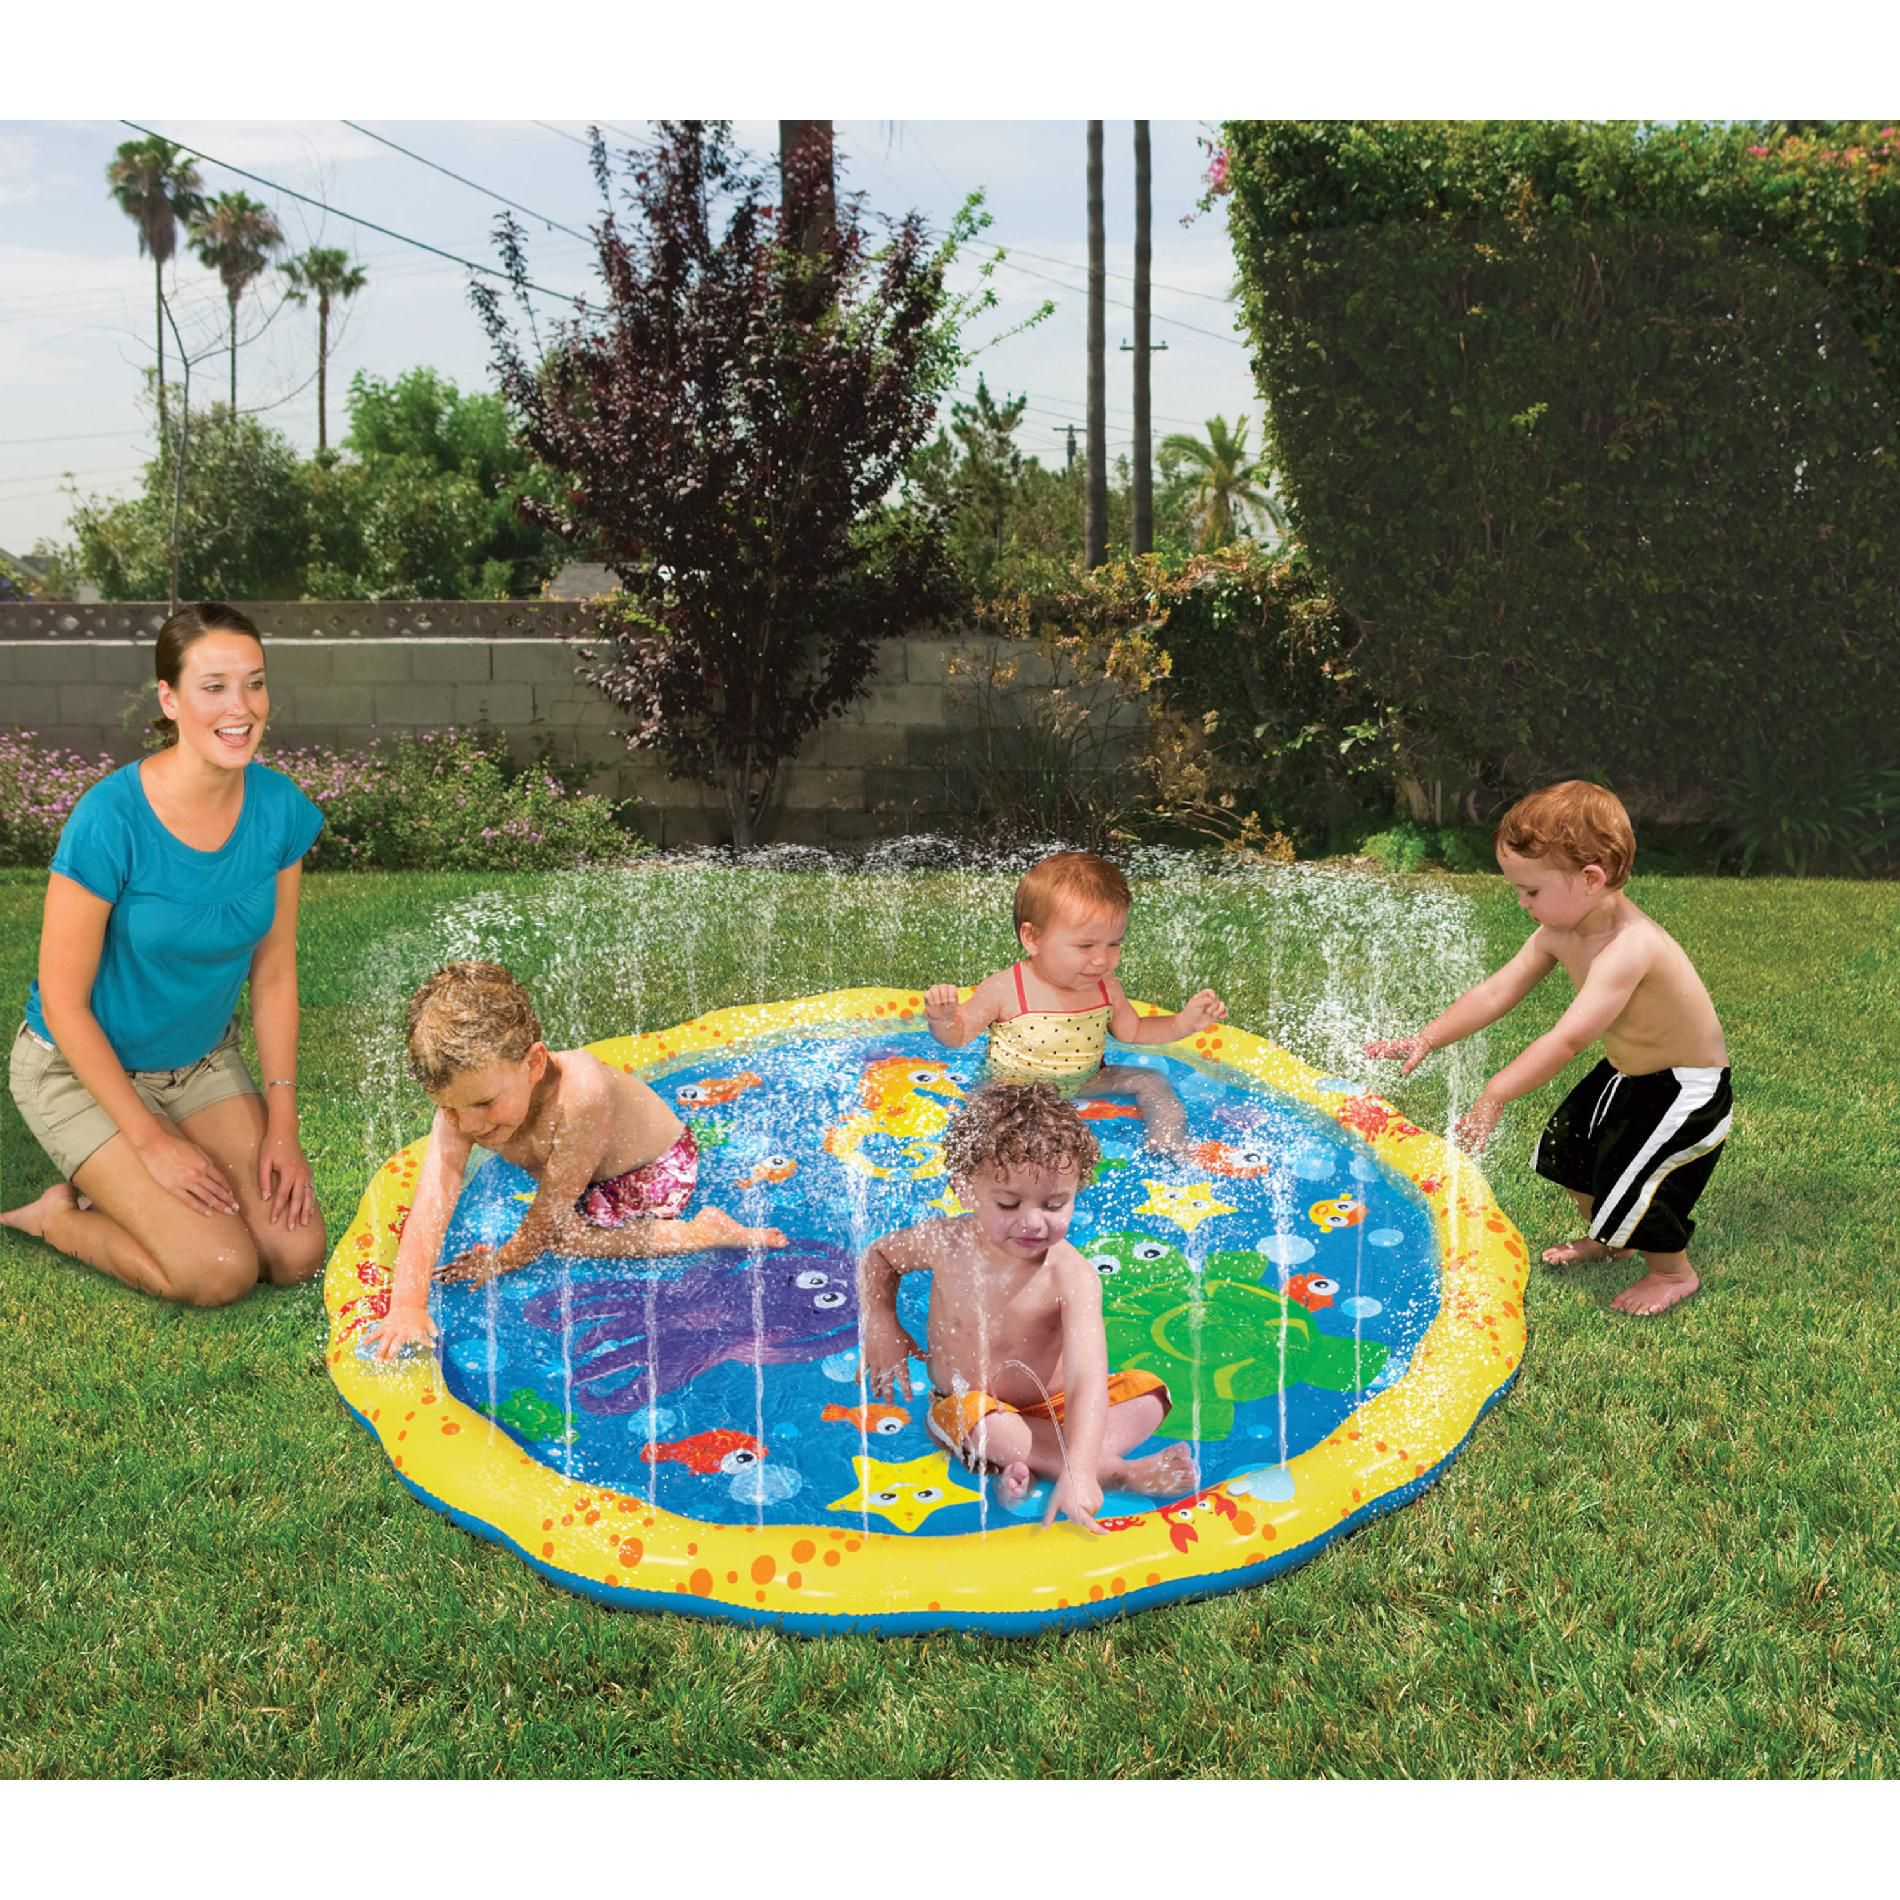 Outside Play Toys For Toddlers : Sprinkle 'n splash water play mat backyard toddler toys